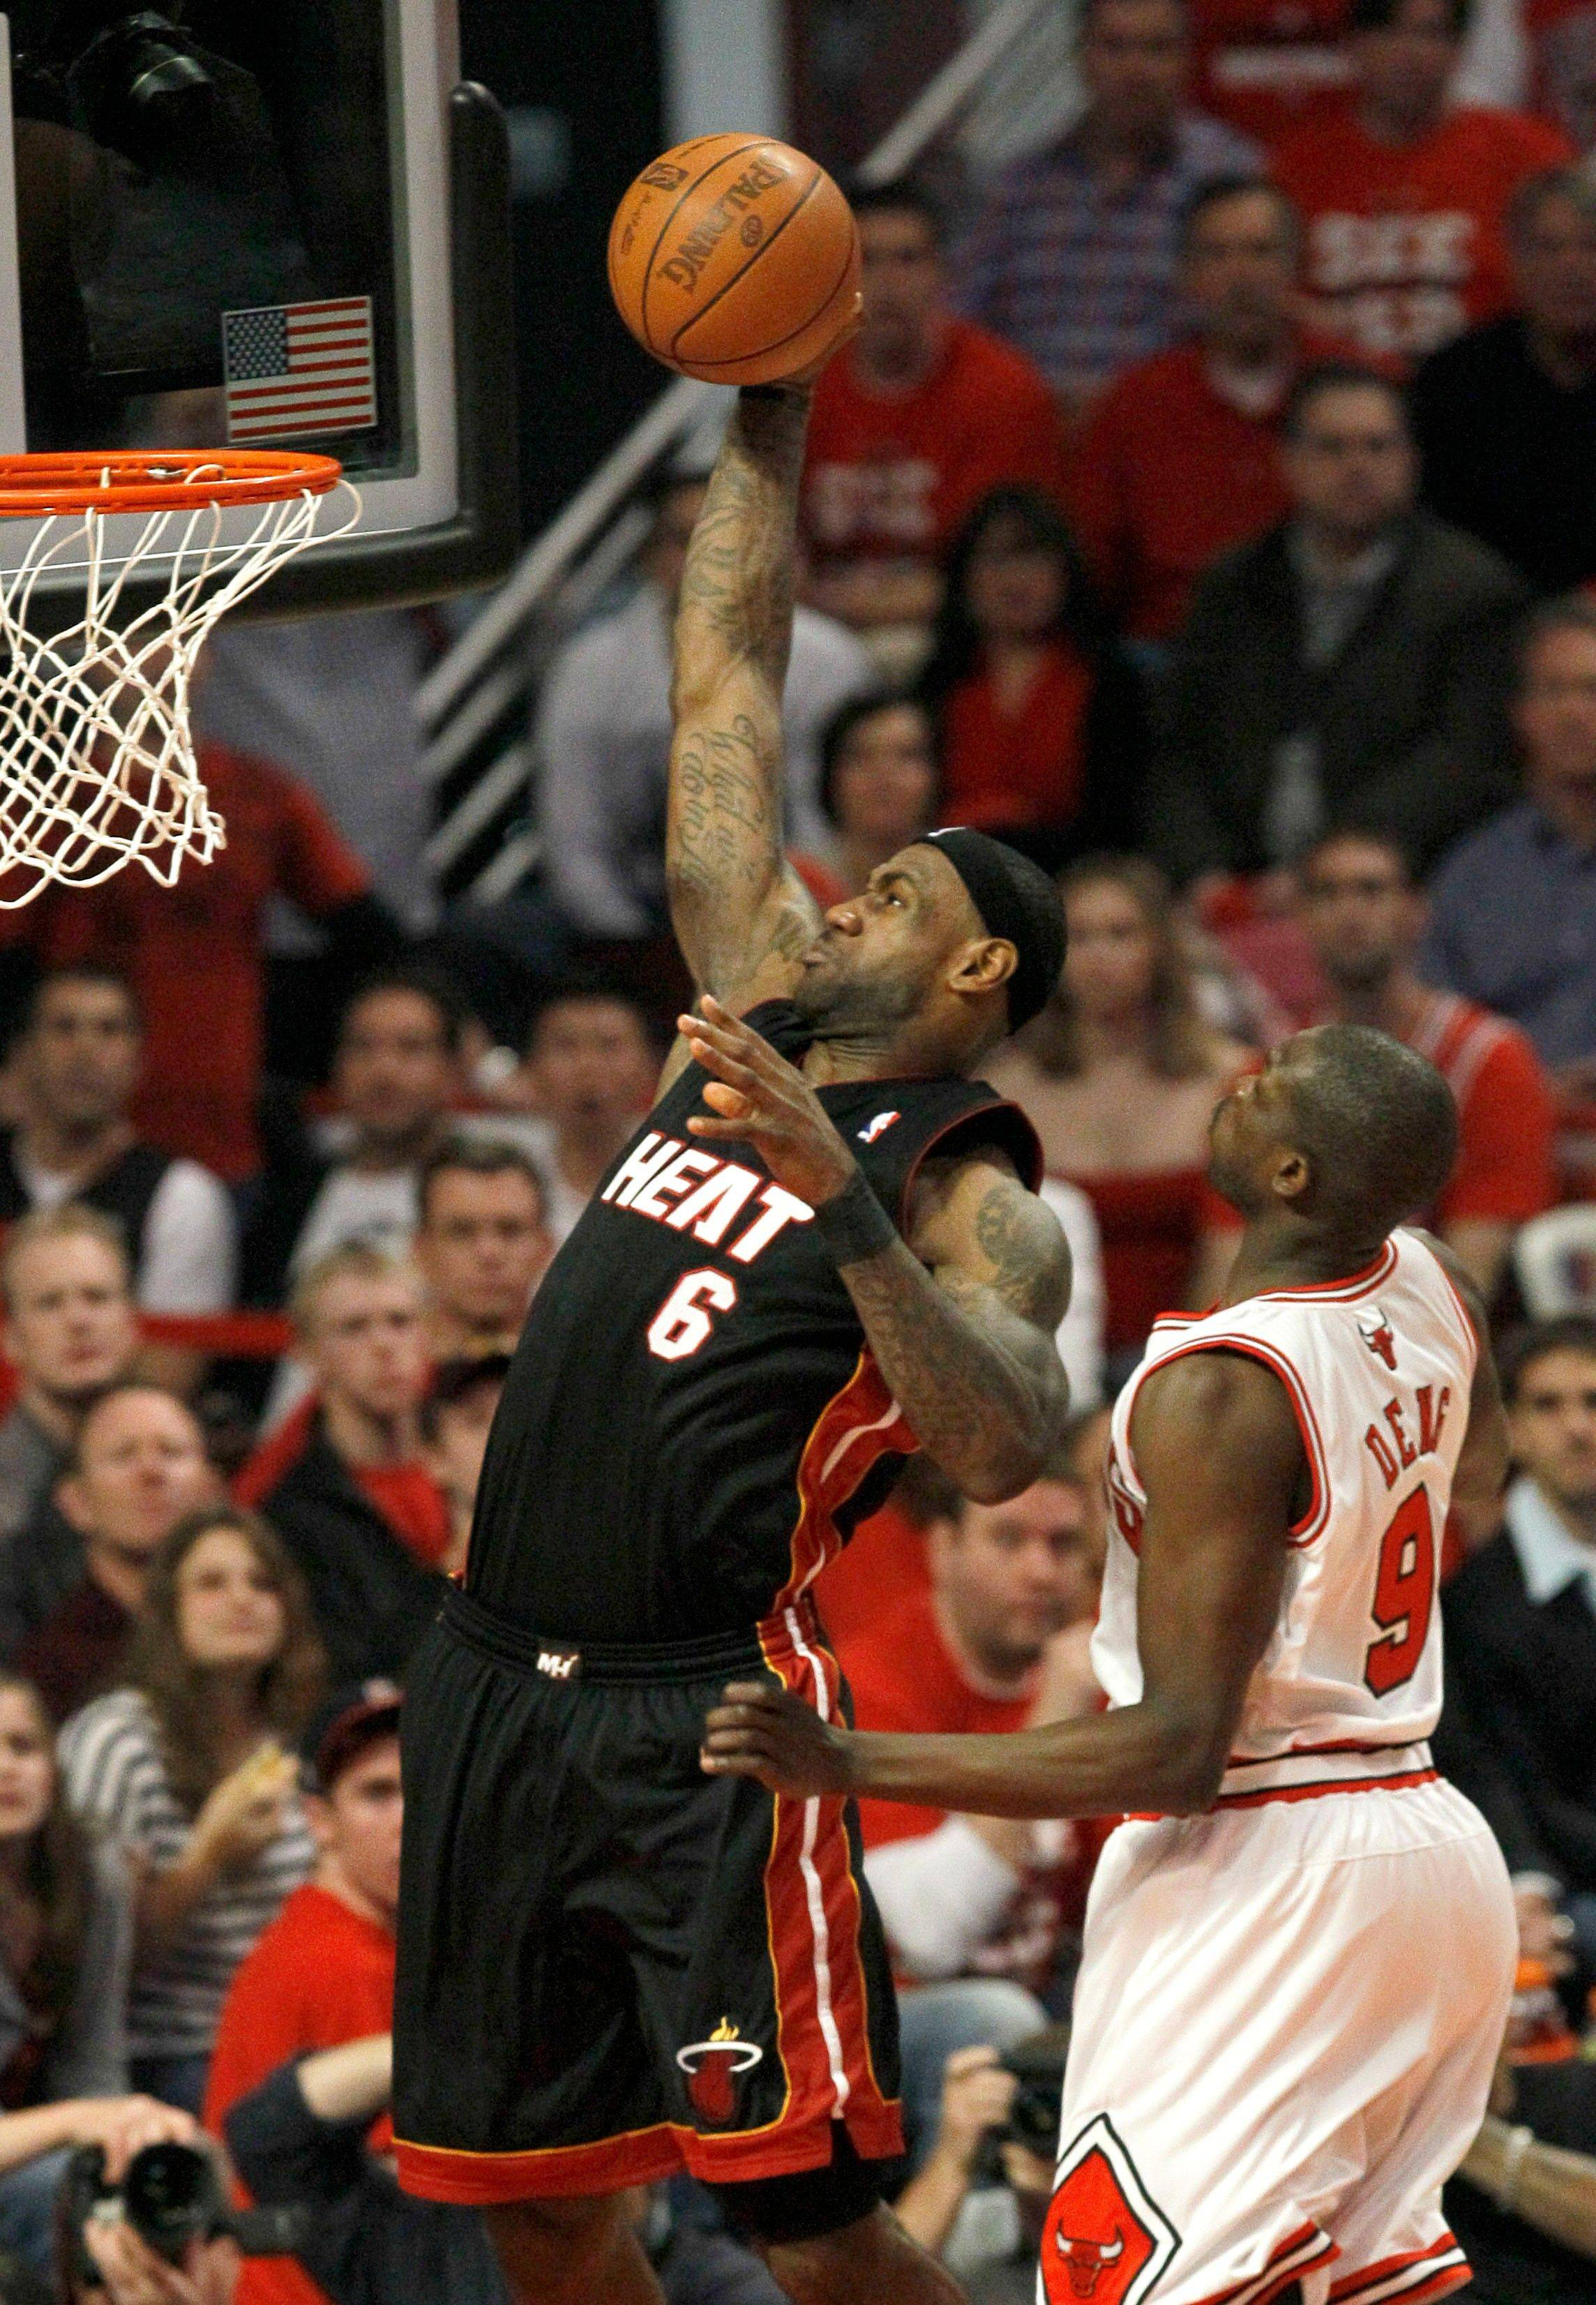 Miami Heat forward LeBron James, left, dunks past Chicago Bulls forward Luol Deng during the first quarter.